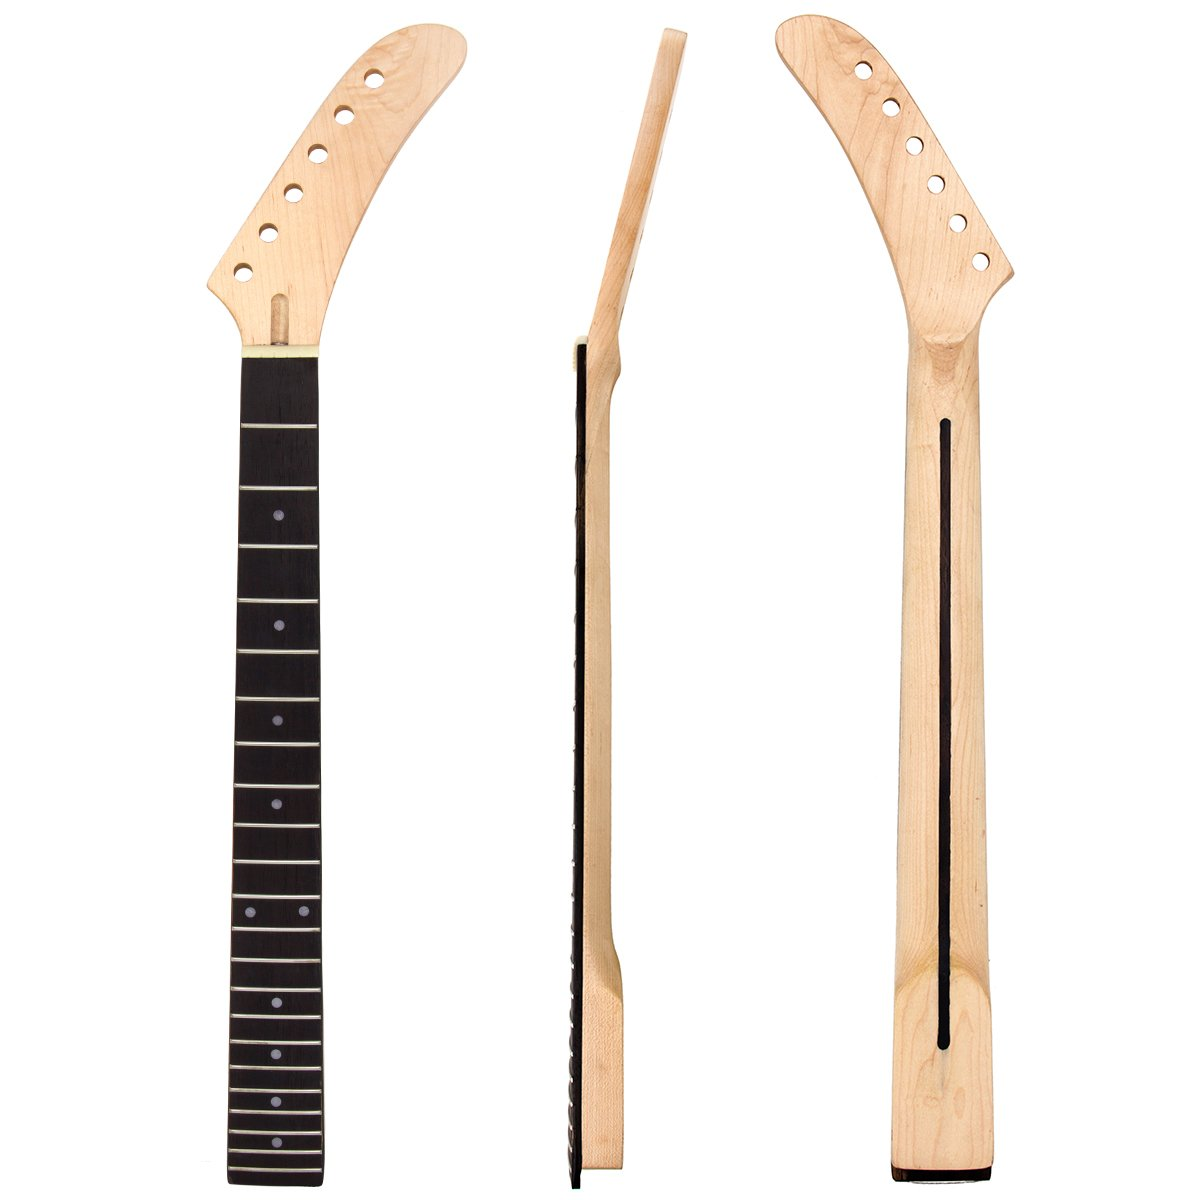 Kmise Banana Electric Guitar Neck Parts Replacement Clear Satin Maple 22 Frets Fingerboard and Back Inlay Bolt On